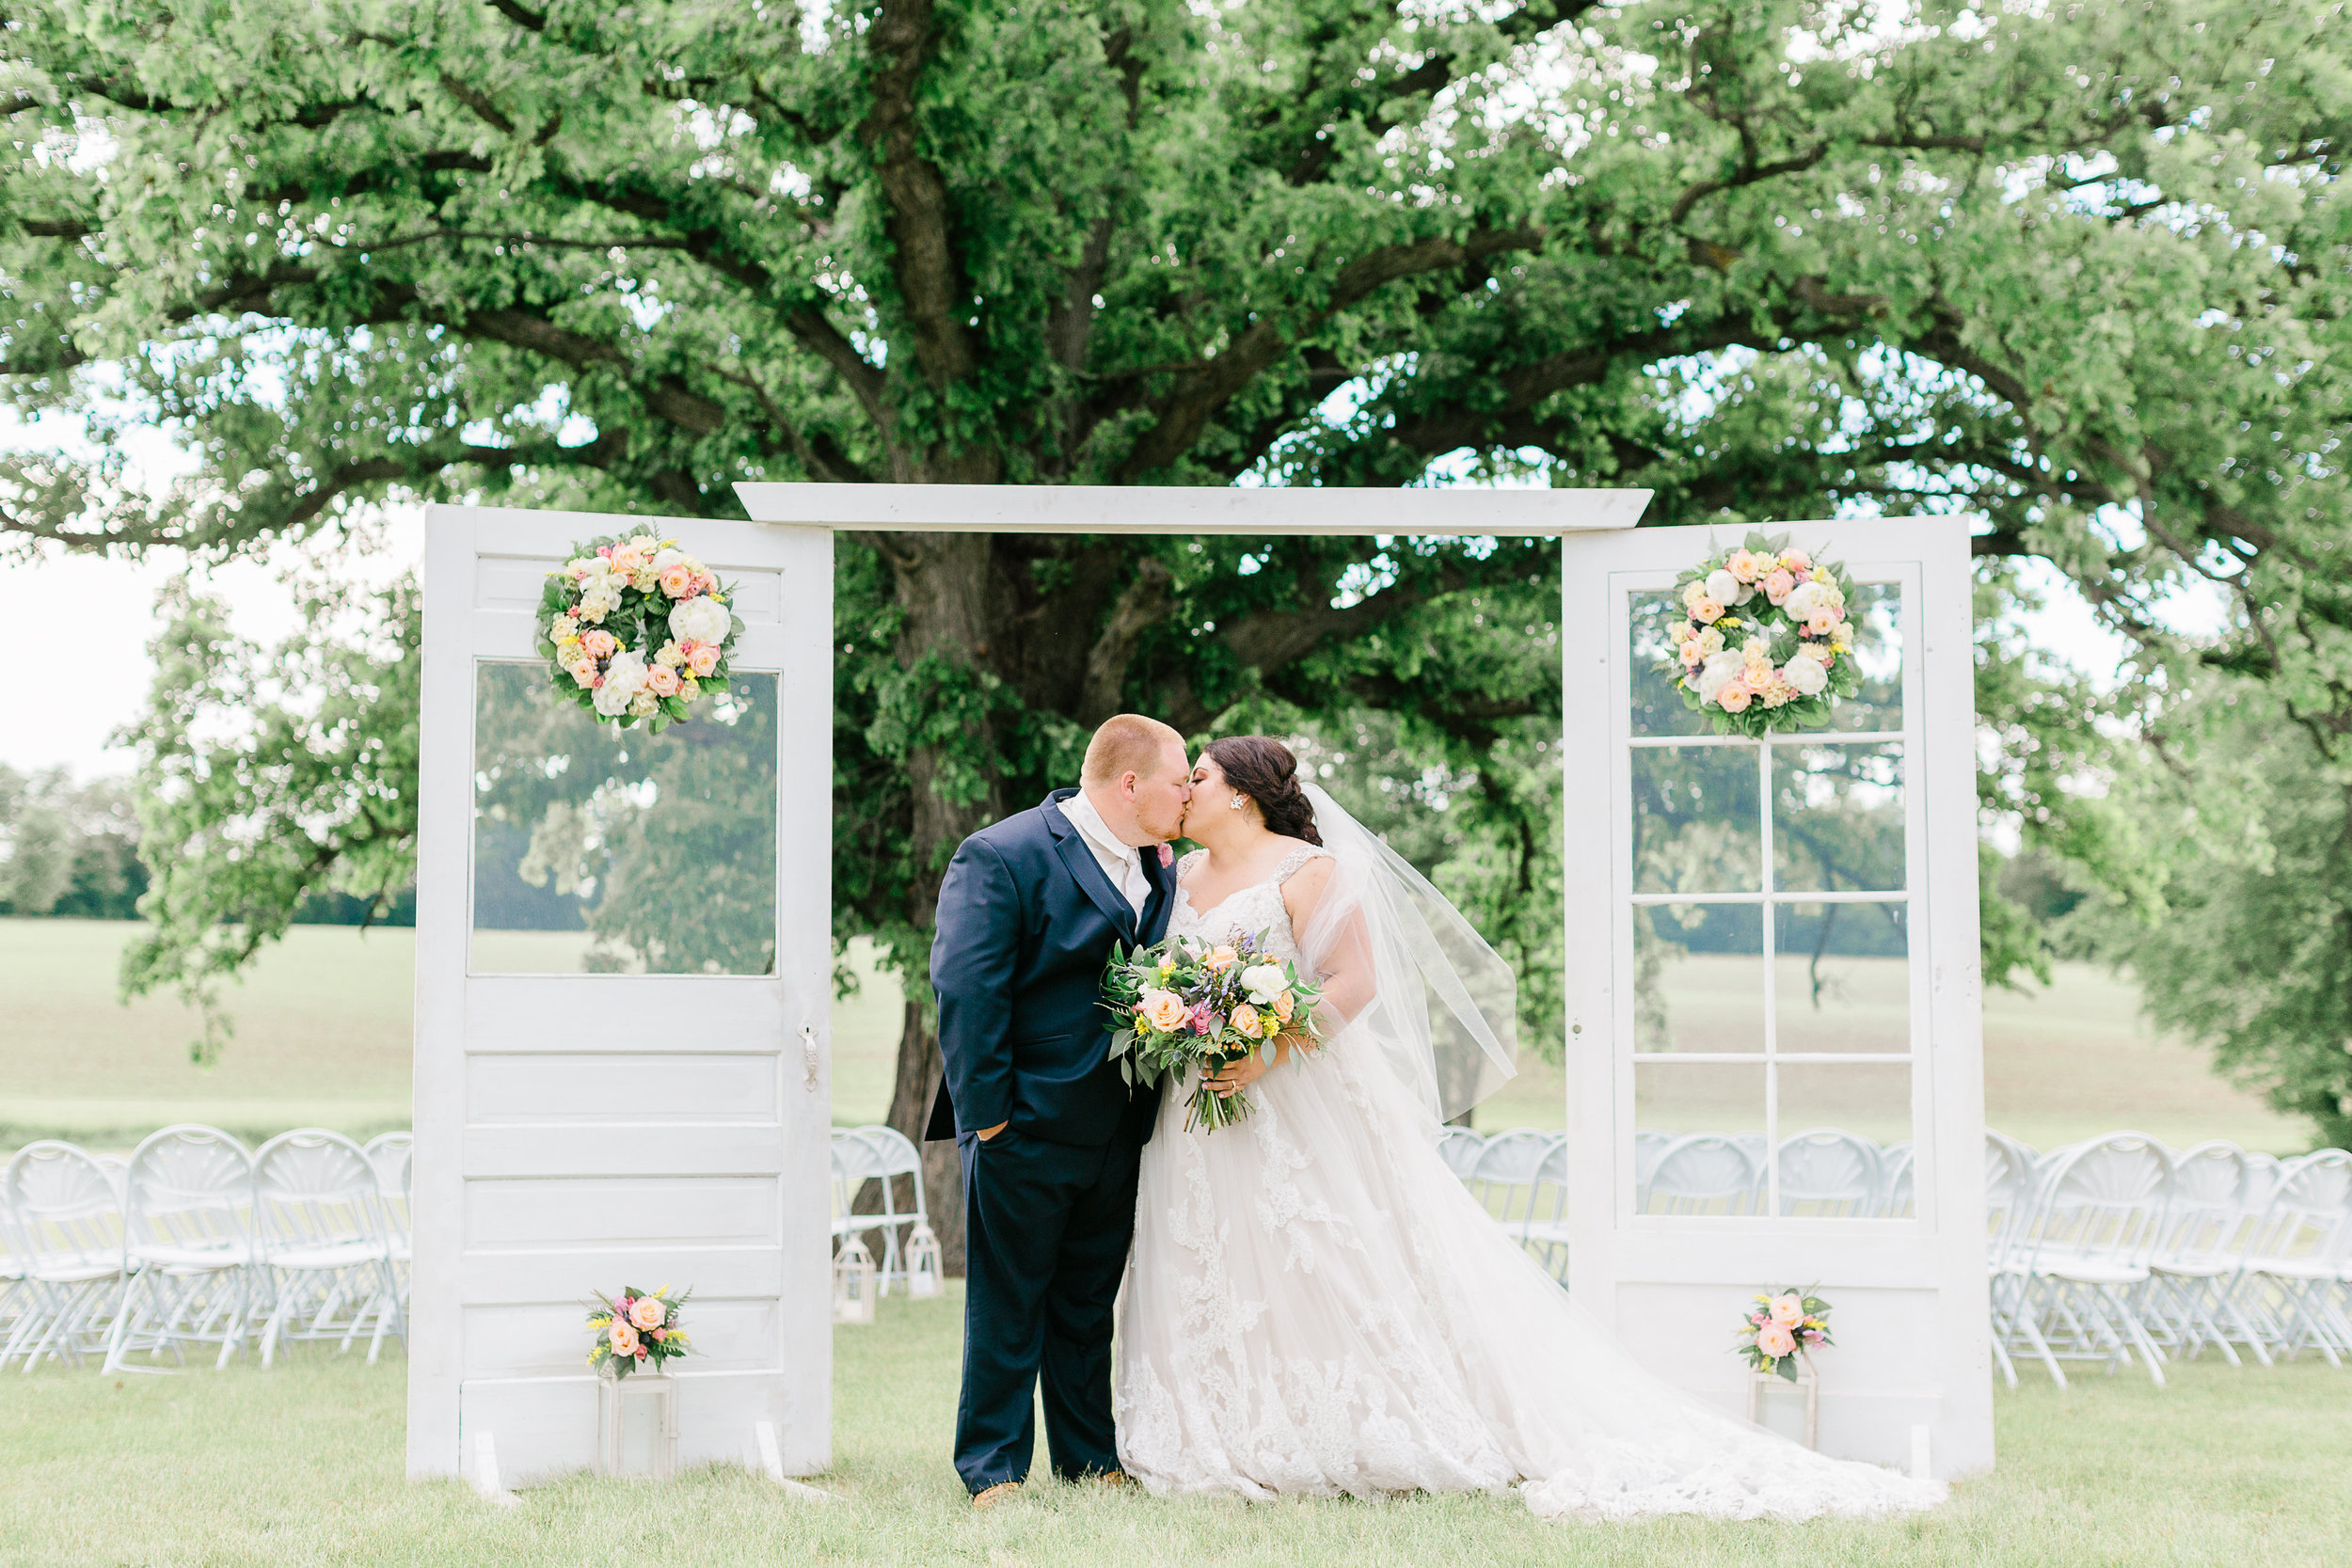 Ceremony Decor Outdoor Wedding Illinois Florist J.Blu Design